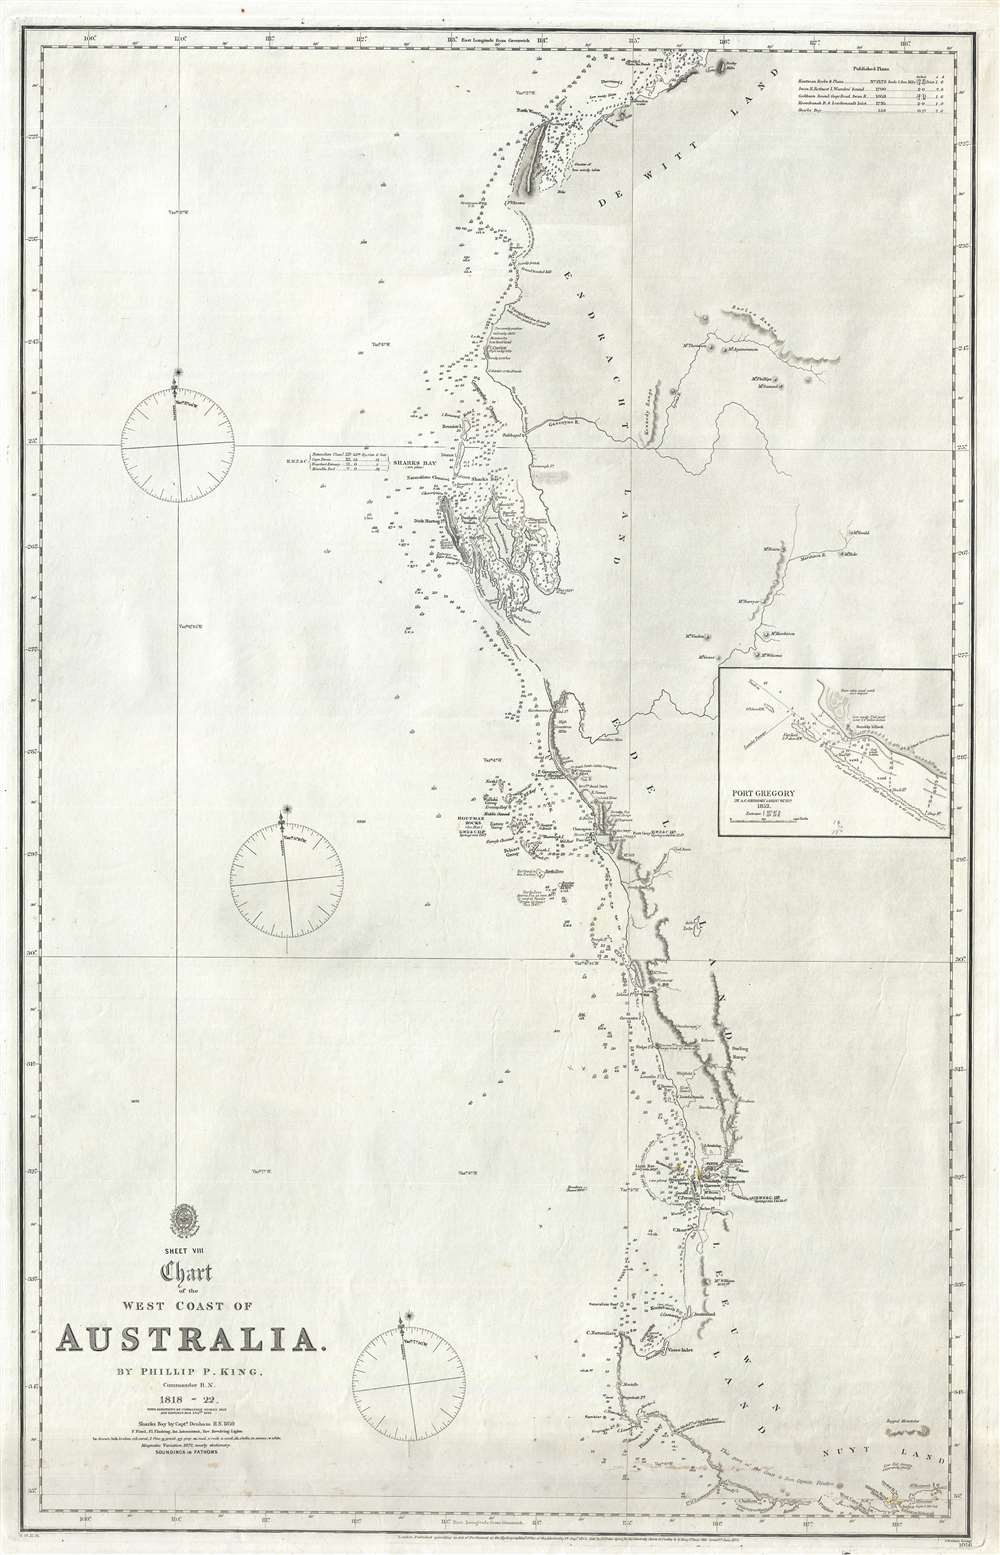 Sheet VIII Chart of the West Coast of Australia.